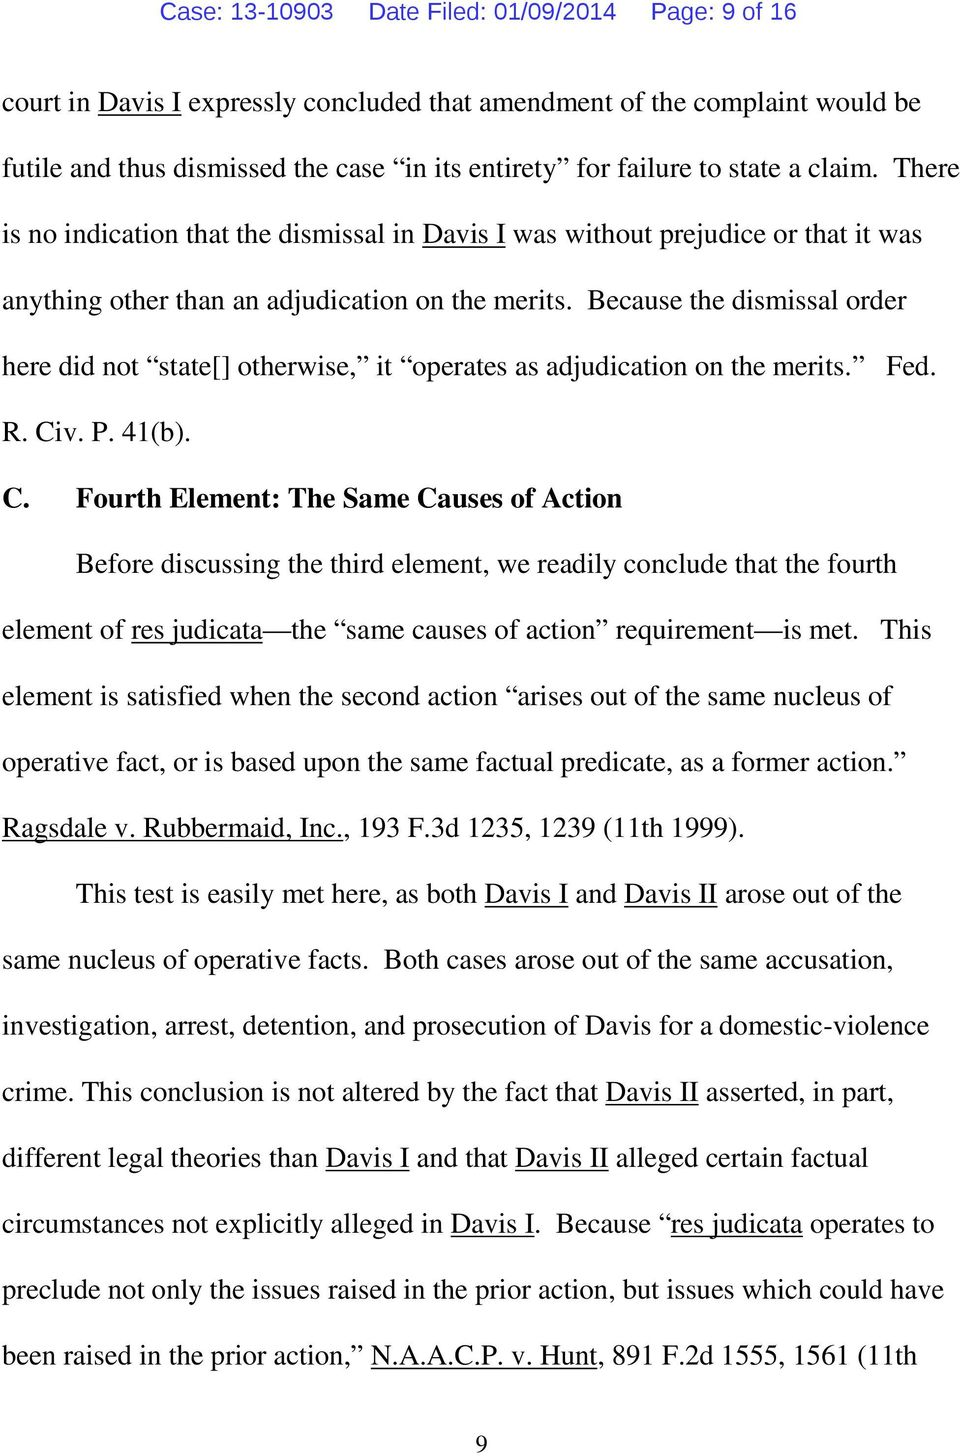 Because the dismissal order here did not state[] otherwise, it operates as adjudication on the merits. Fed. R. Ci